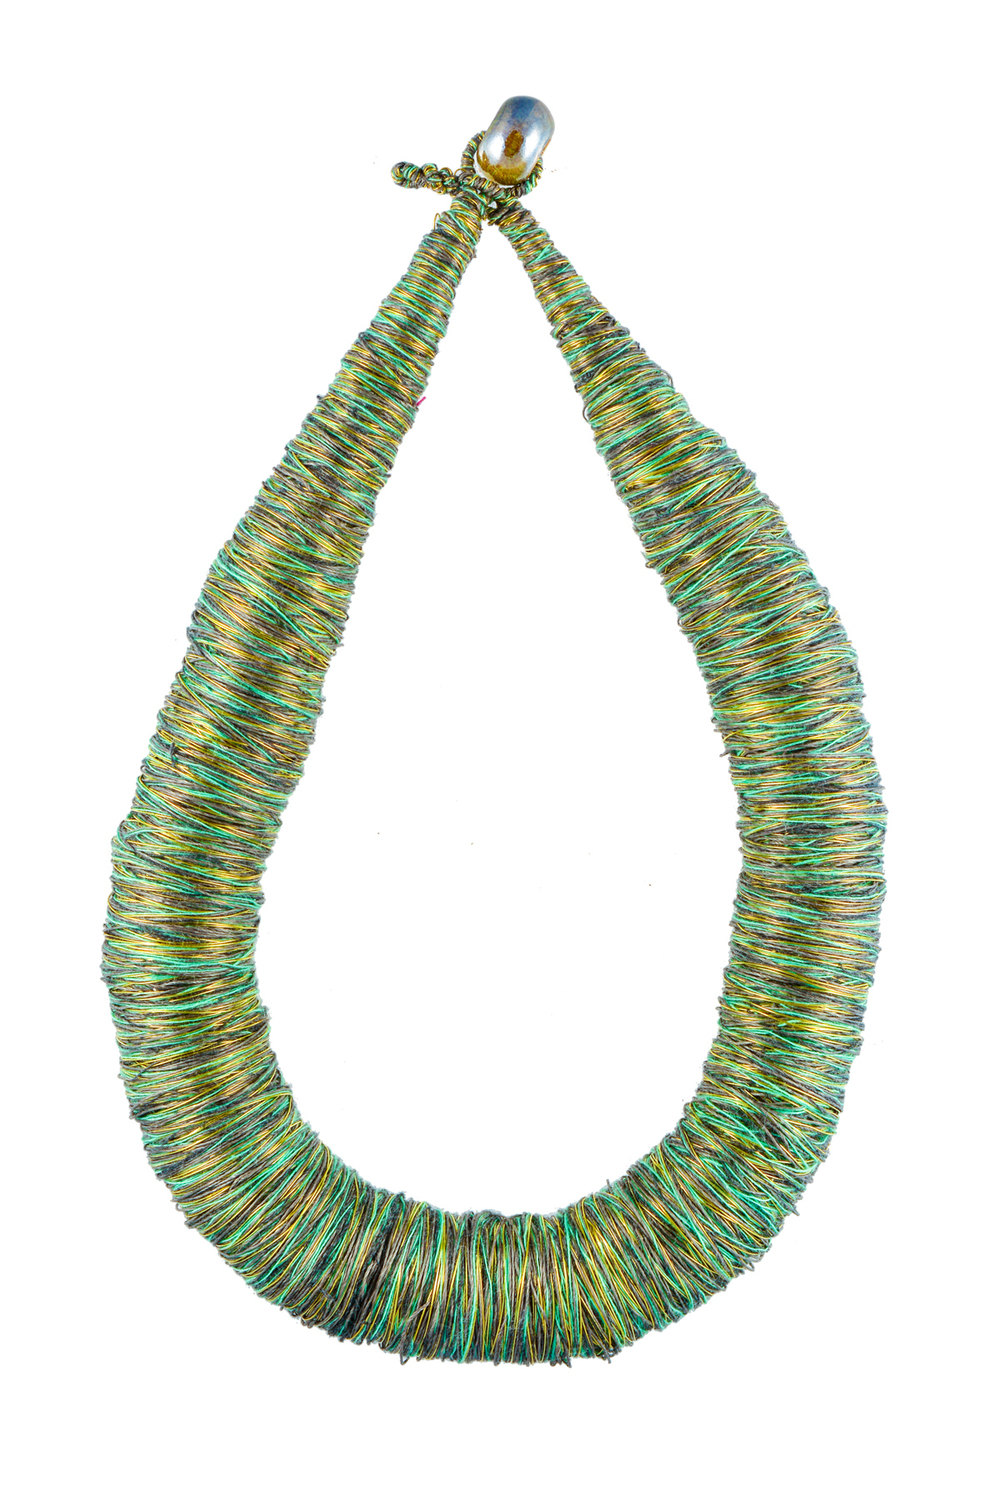 PANNI_VESSEY_GRAPHIT_GREEN_NECKLACE.jpg